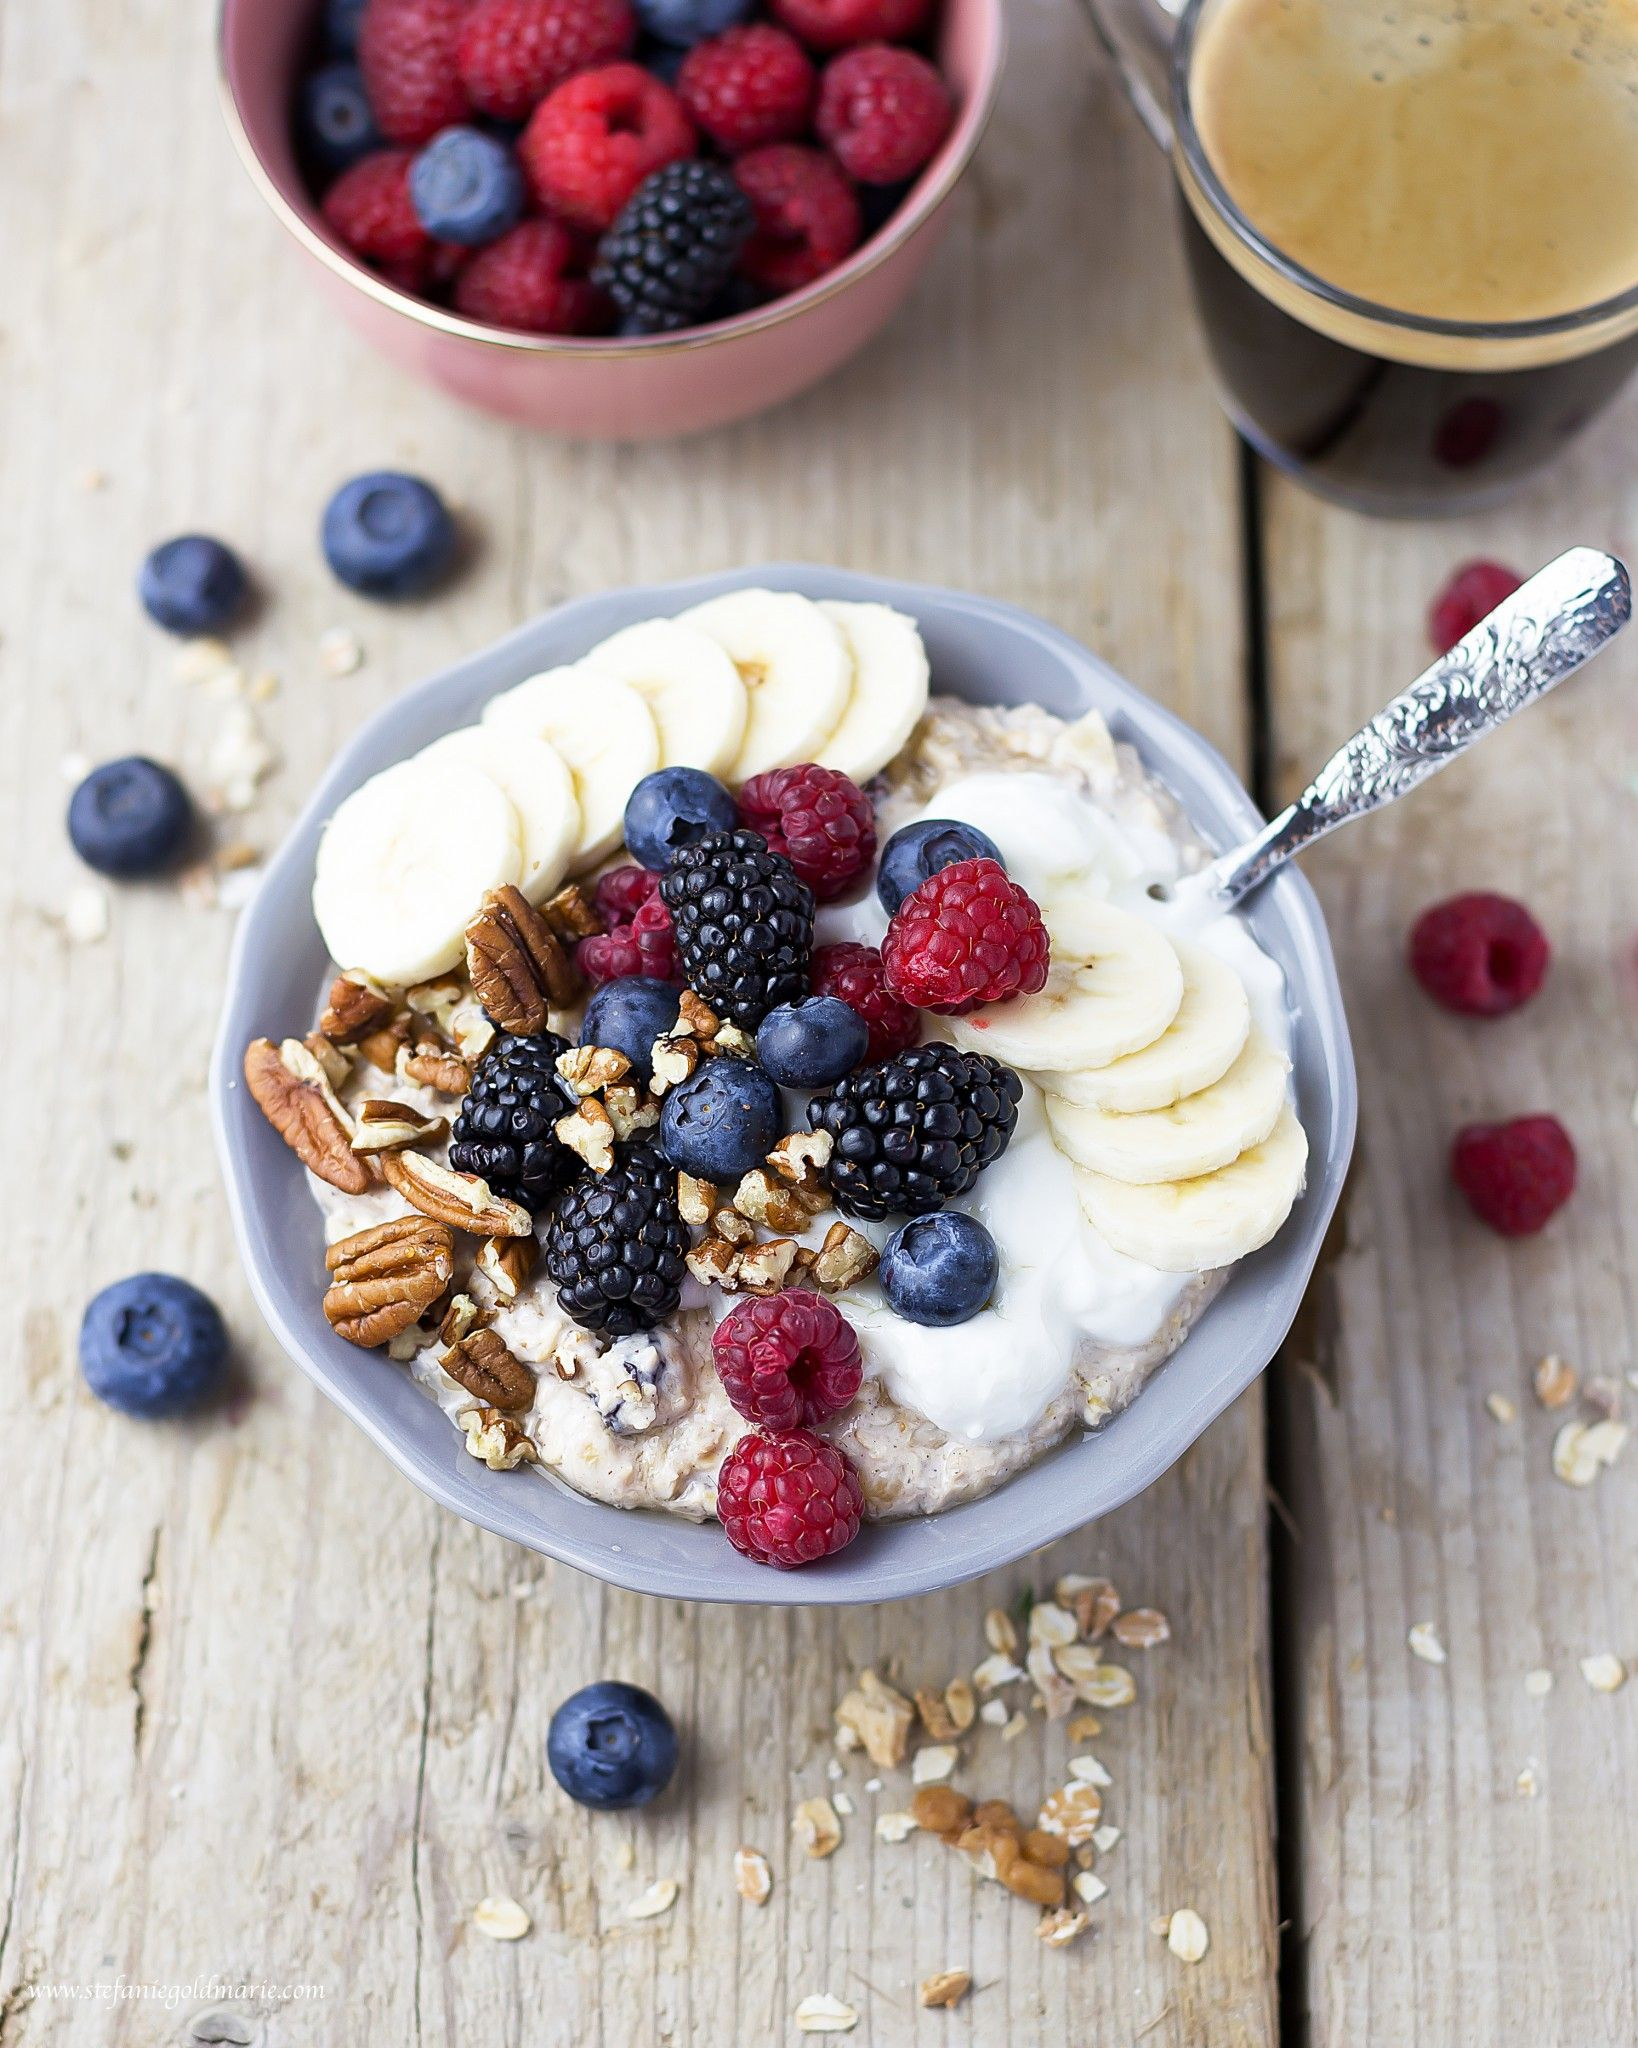 bircher muesli a la jamie oliver s e lowcarb rezepte ohne zucker pinterest fr hst ck. Black Bedroom Furniture Sets. Home Design Ideas